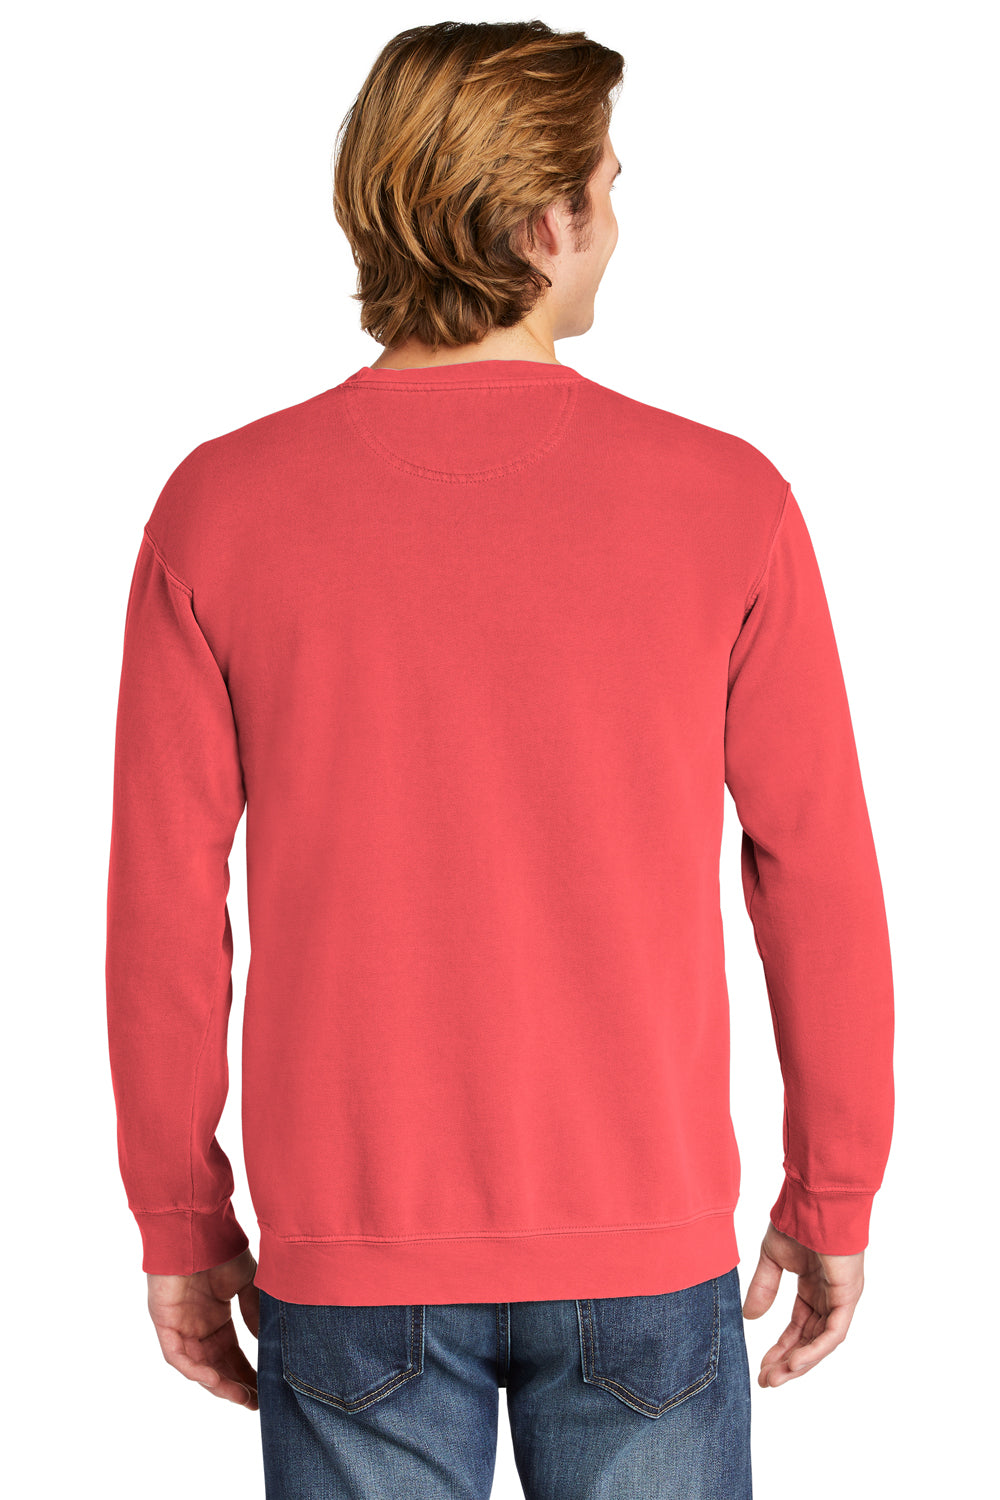 Comfort Colors 1566 Mens Crewneck Sweatshirt Watermelon Pink Back